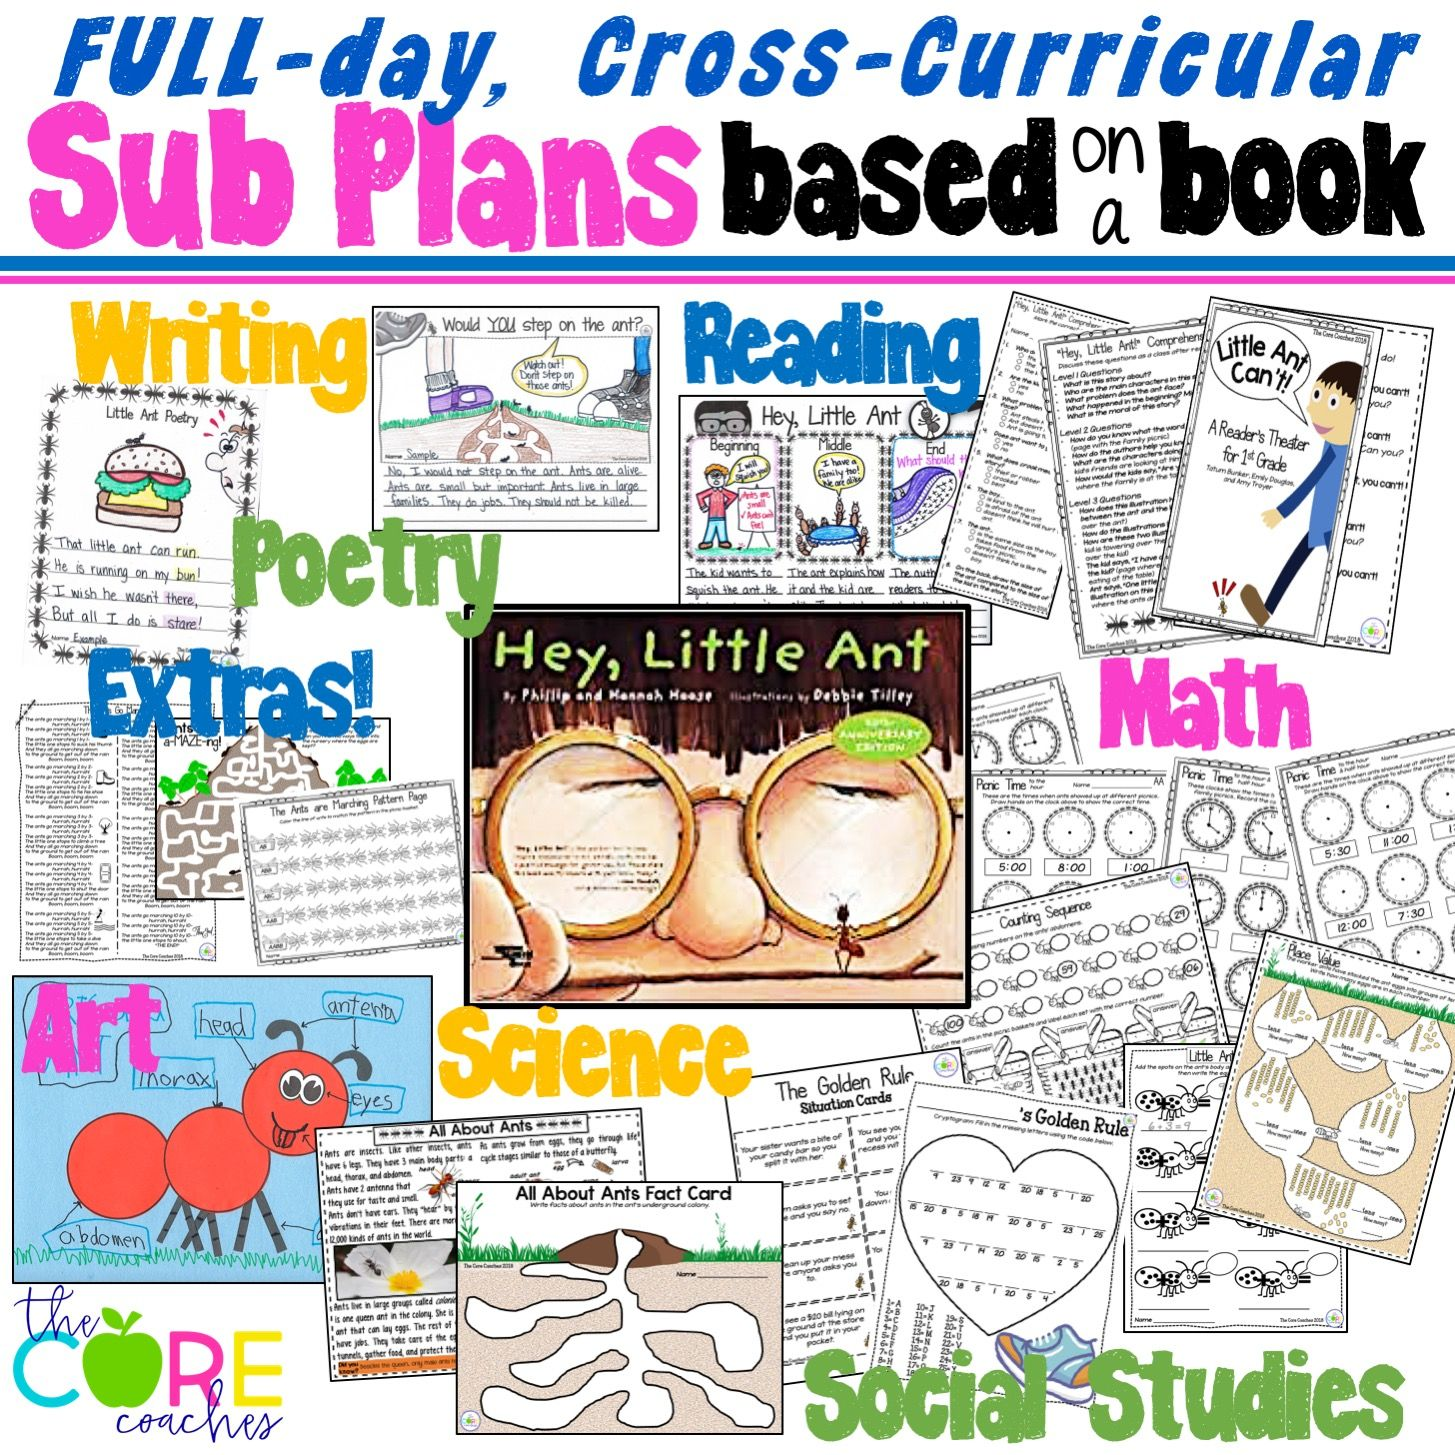 More than you can use in a day! Perfect for a teacher sick-day emergency! Substitute Teaching 1 Book at a Time with Hey Little Ant. By the Core Coaches